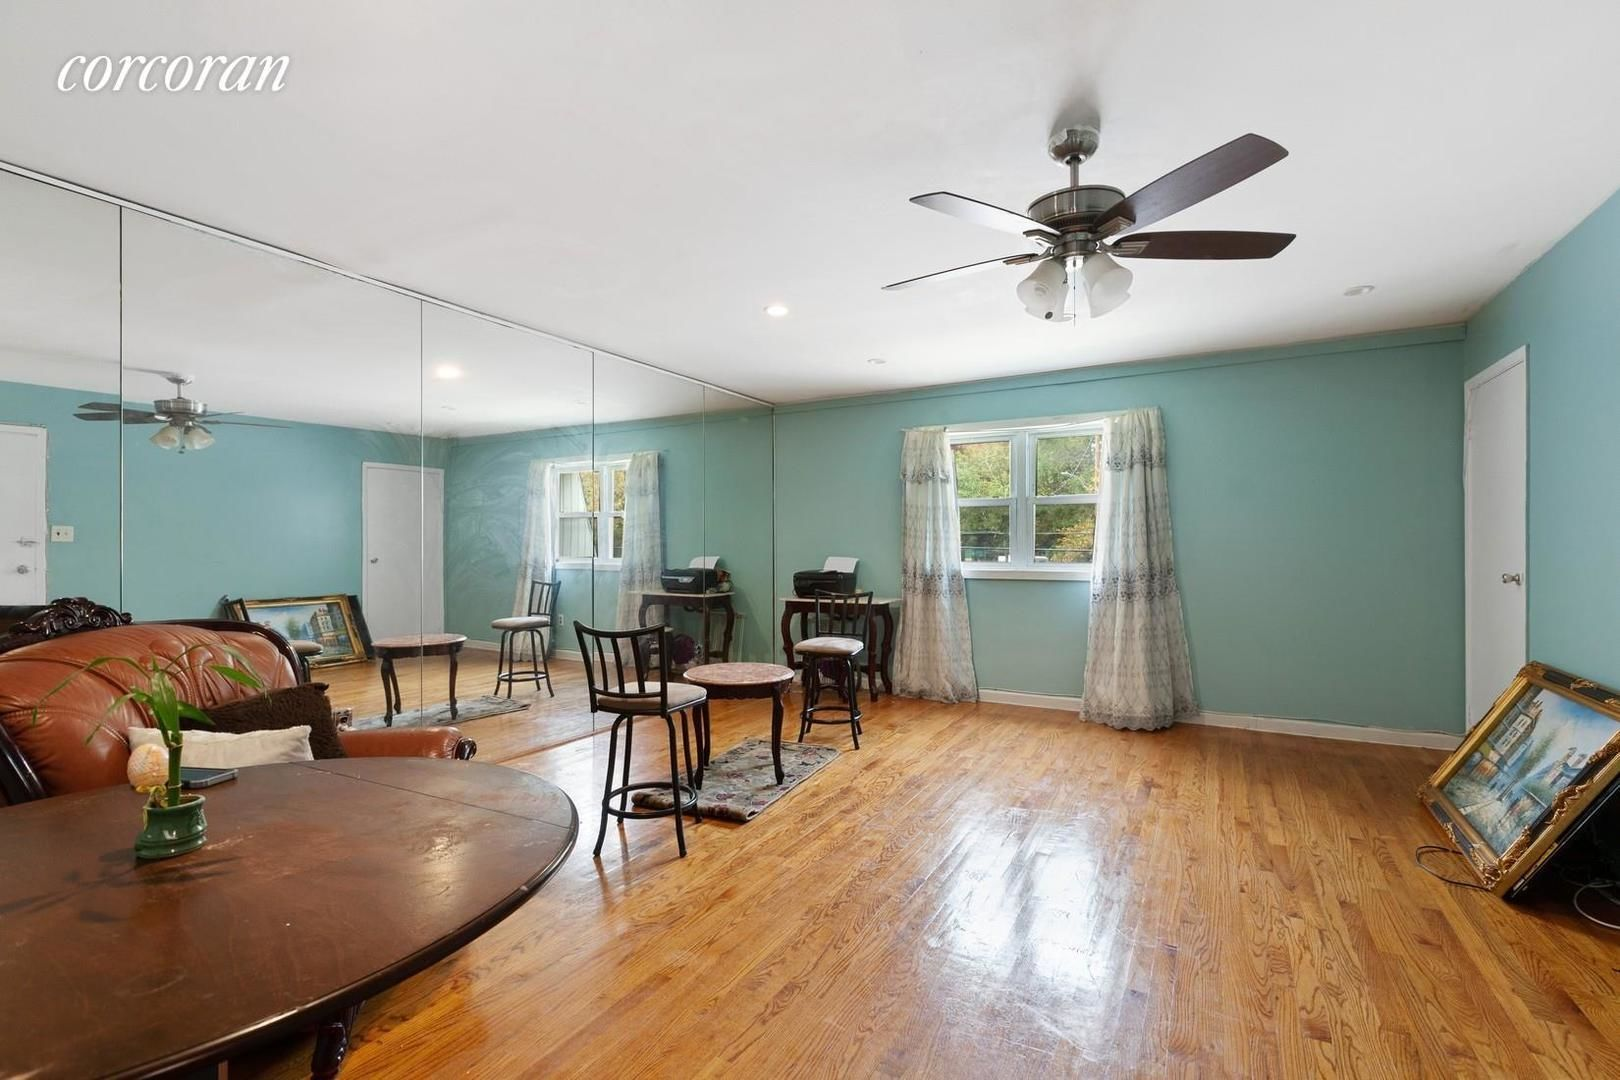 Apartment for sale at 166-30a 137th Avenue, Apt 0